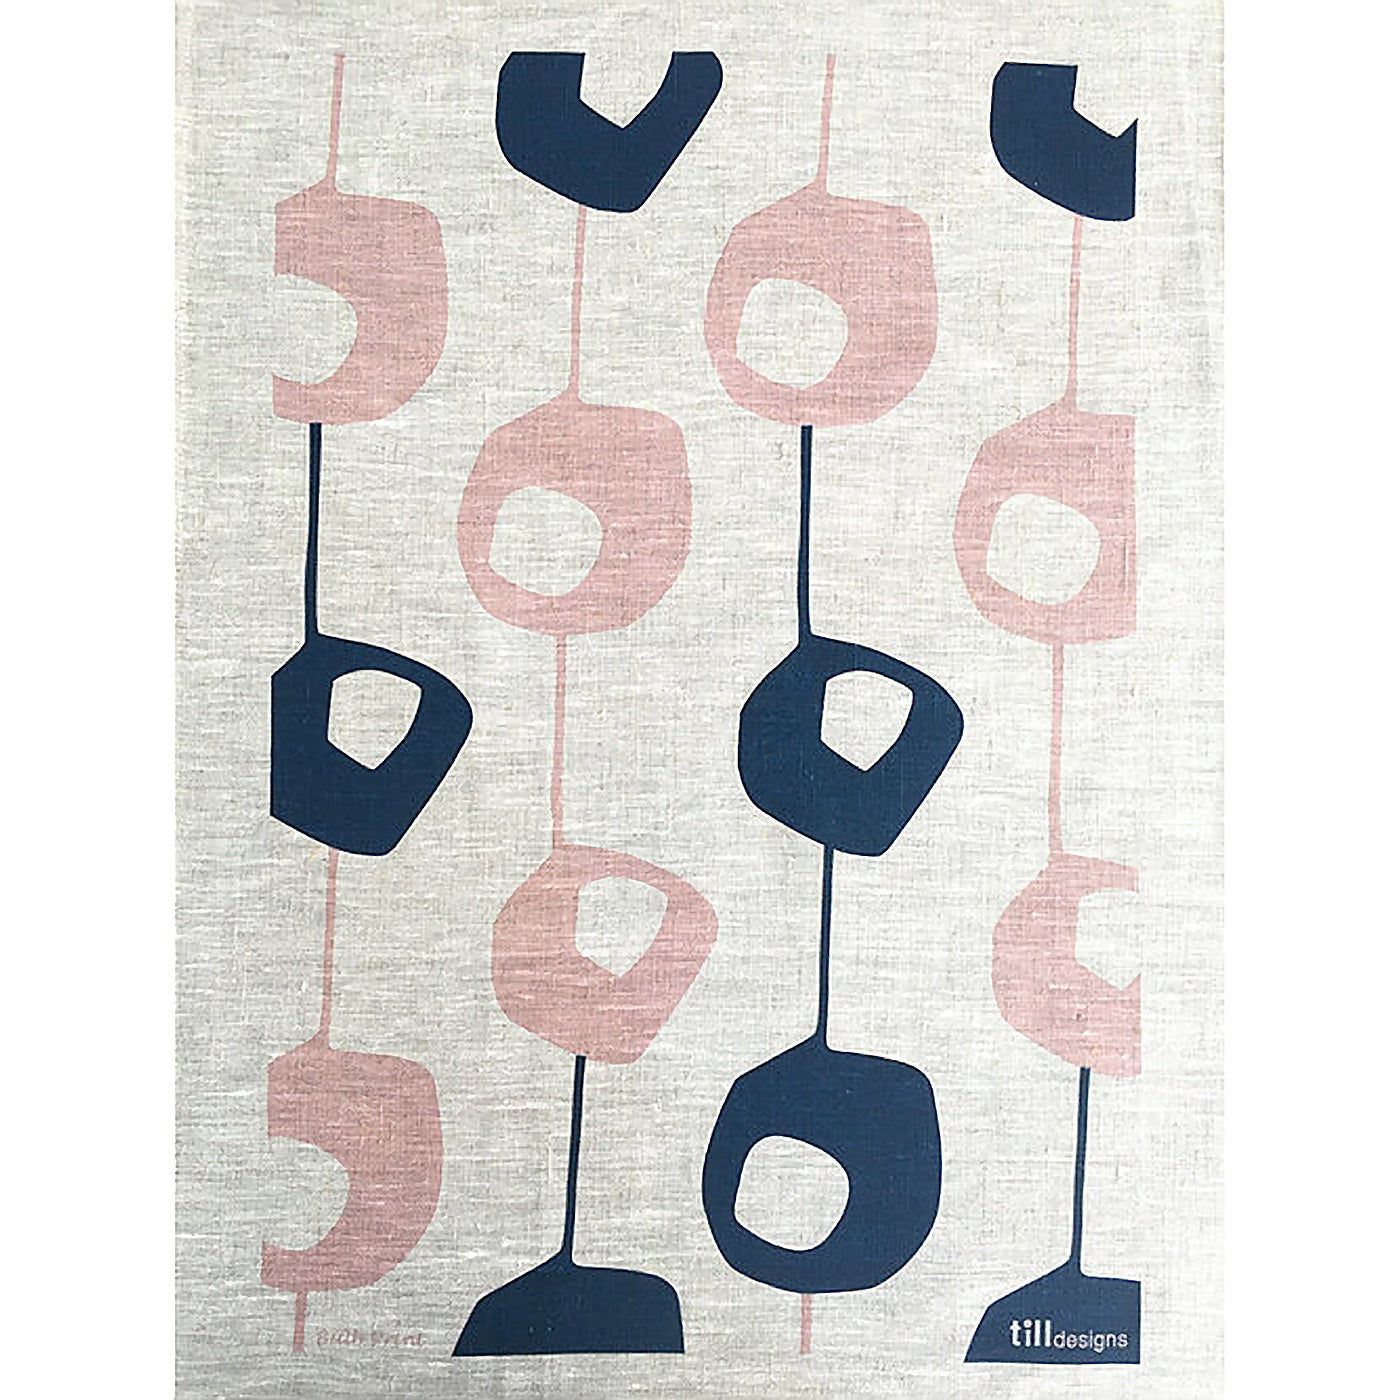 Till Designs - Tea Towel - Pod - Pink & Indigo